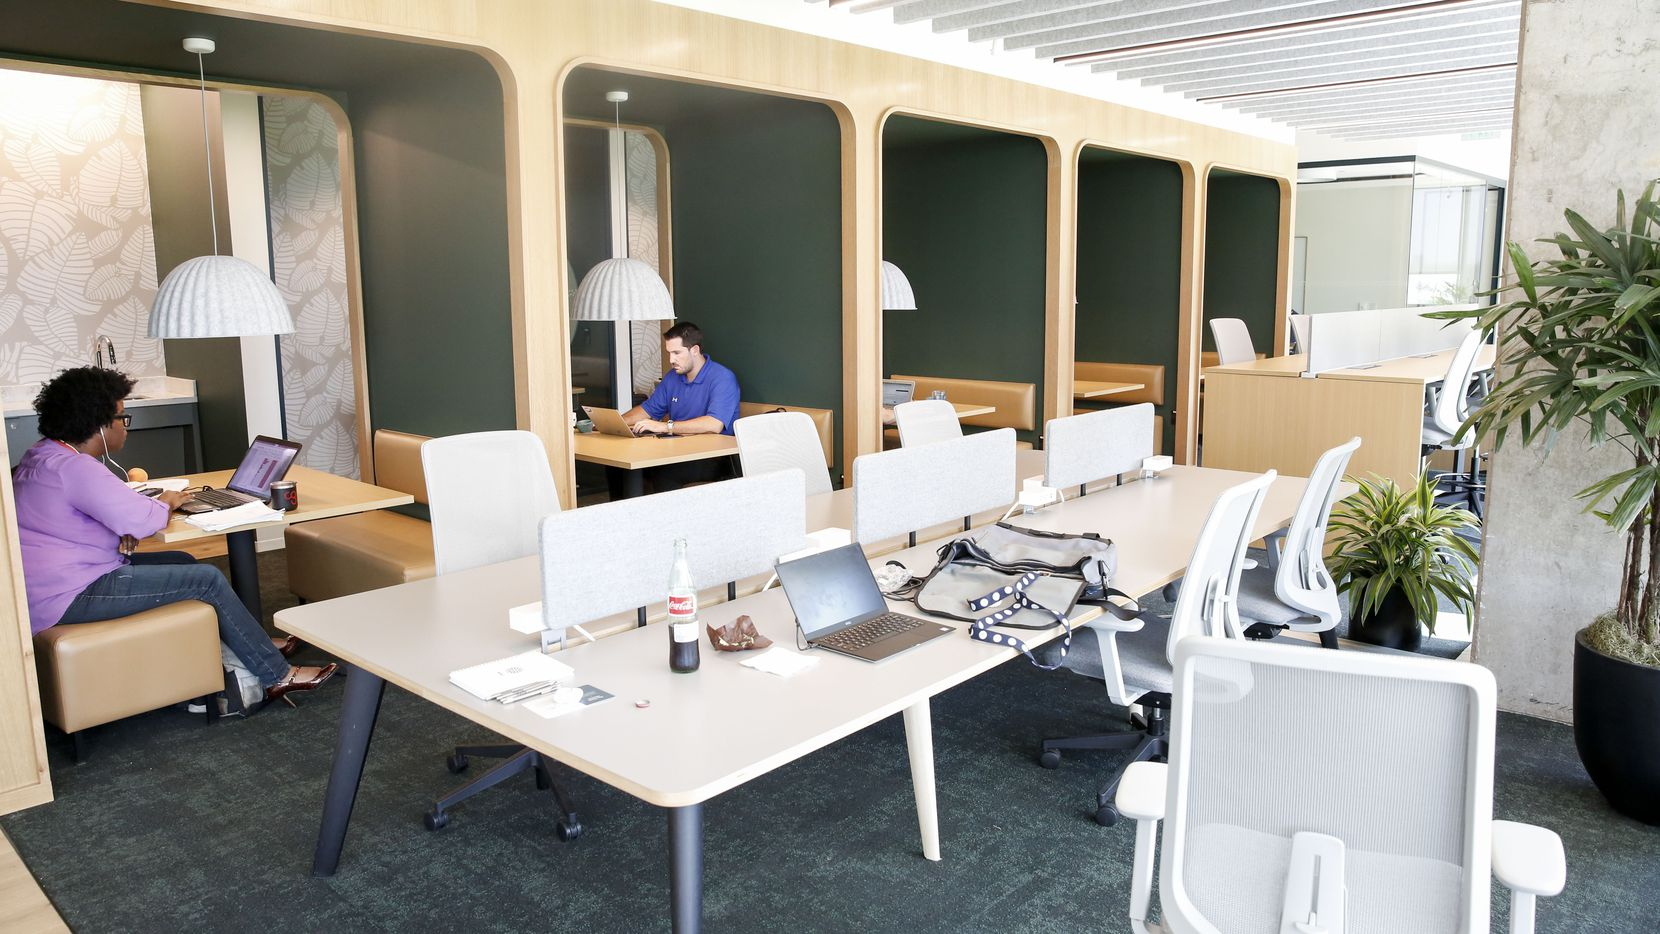 Shared offices - including the new Hana coworking center in Uptown - occupy millions of square feet in D-FW.